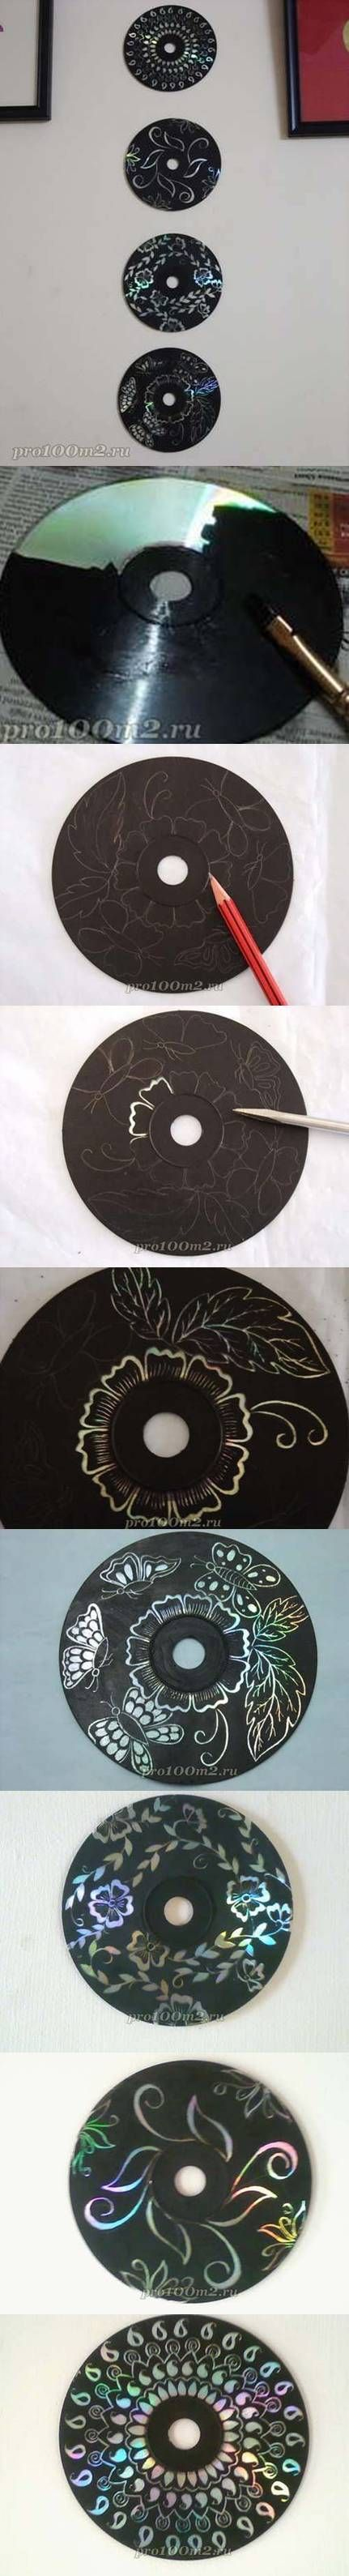 diy wall decoration with cd home projects pinterest alte cds gute ideen und alter. Black Bedroom Furniture Sets. Home Design Ideas